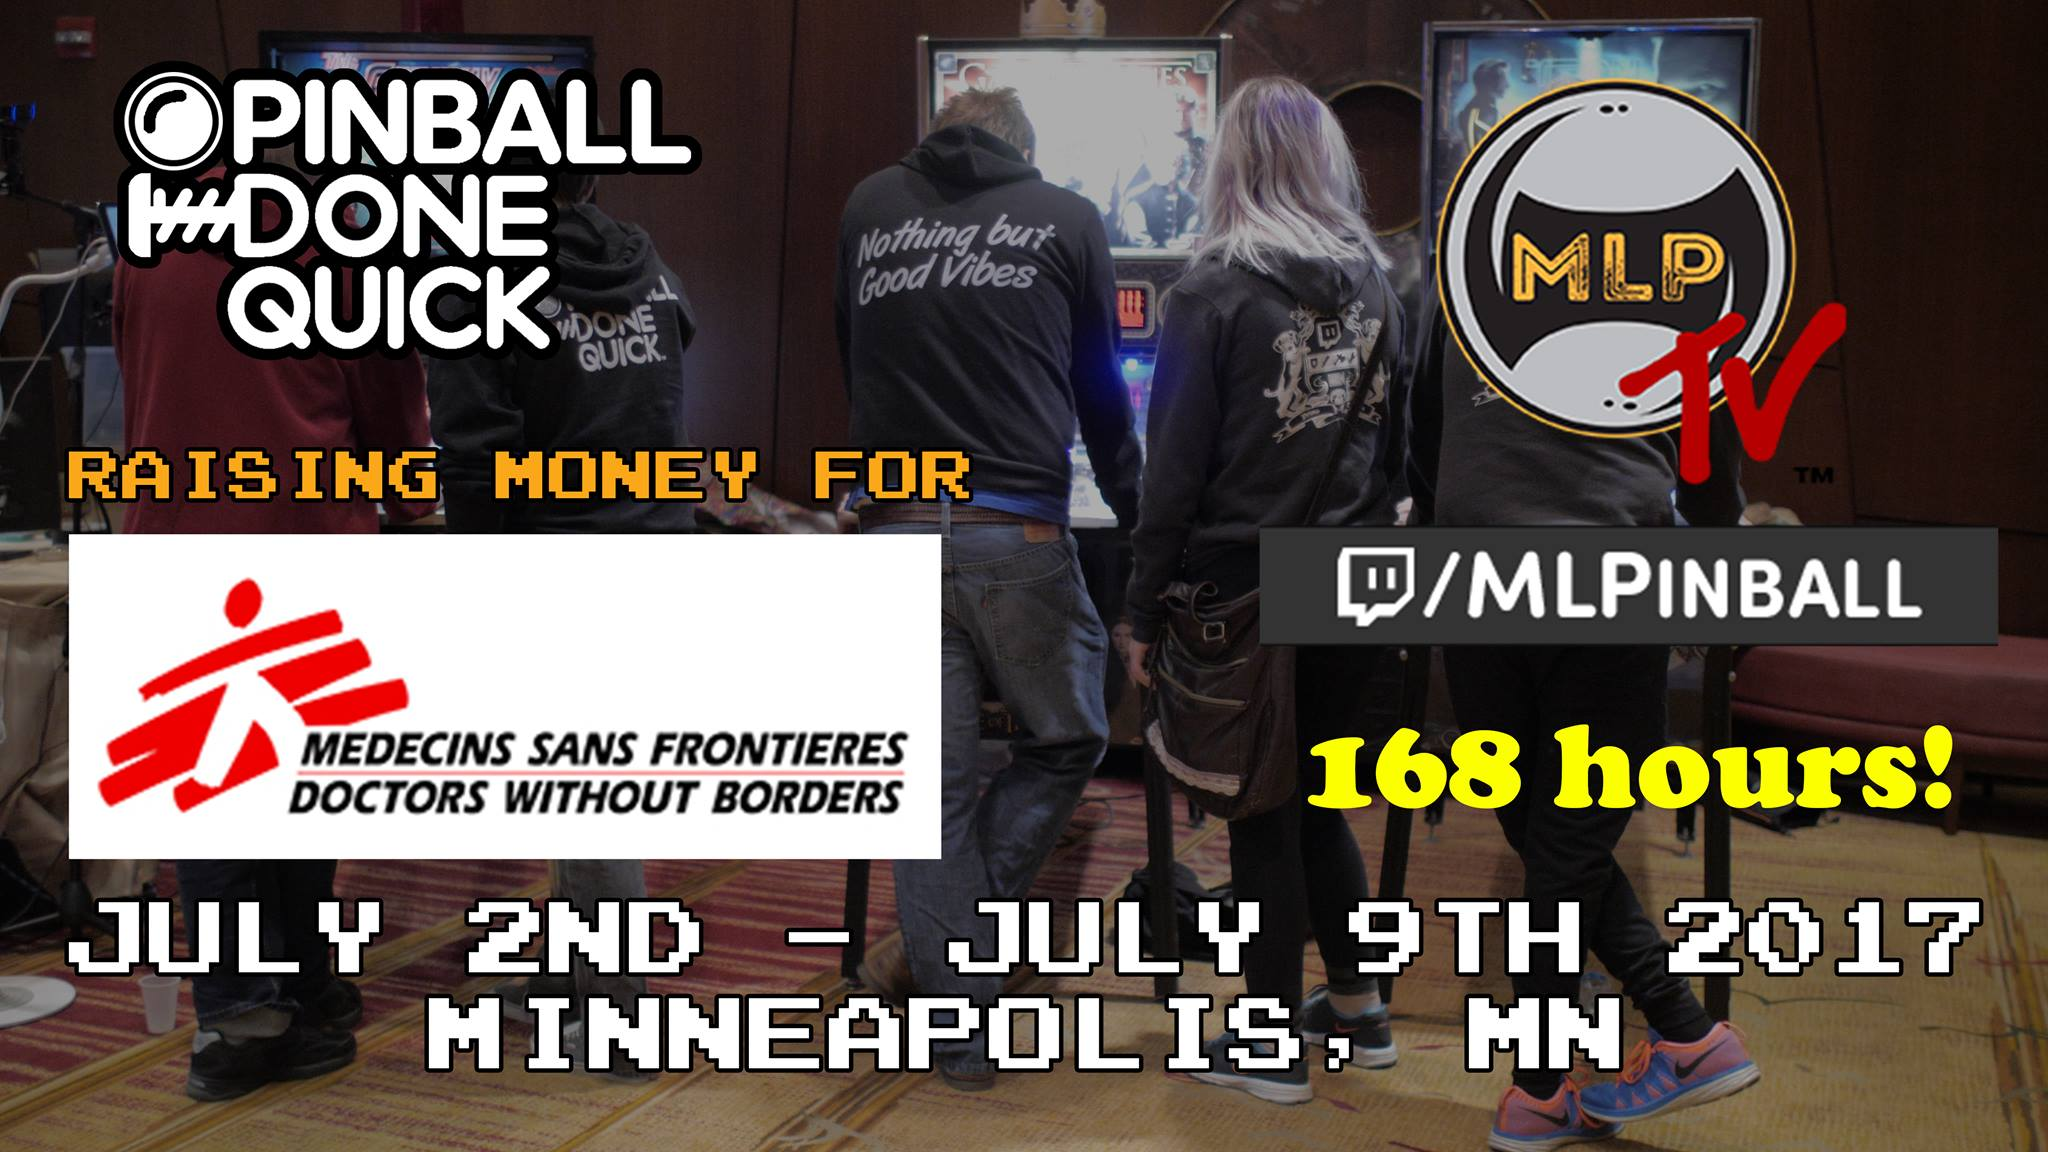 168 straight hours of pinball streaming! Major League Pinball! July 2-9 at Summer Games Done Quick!